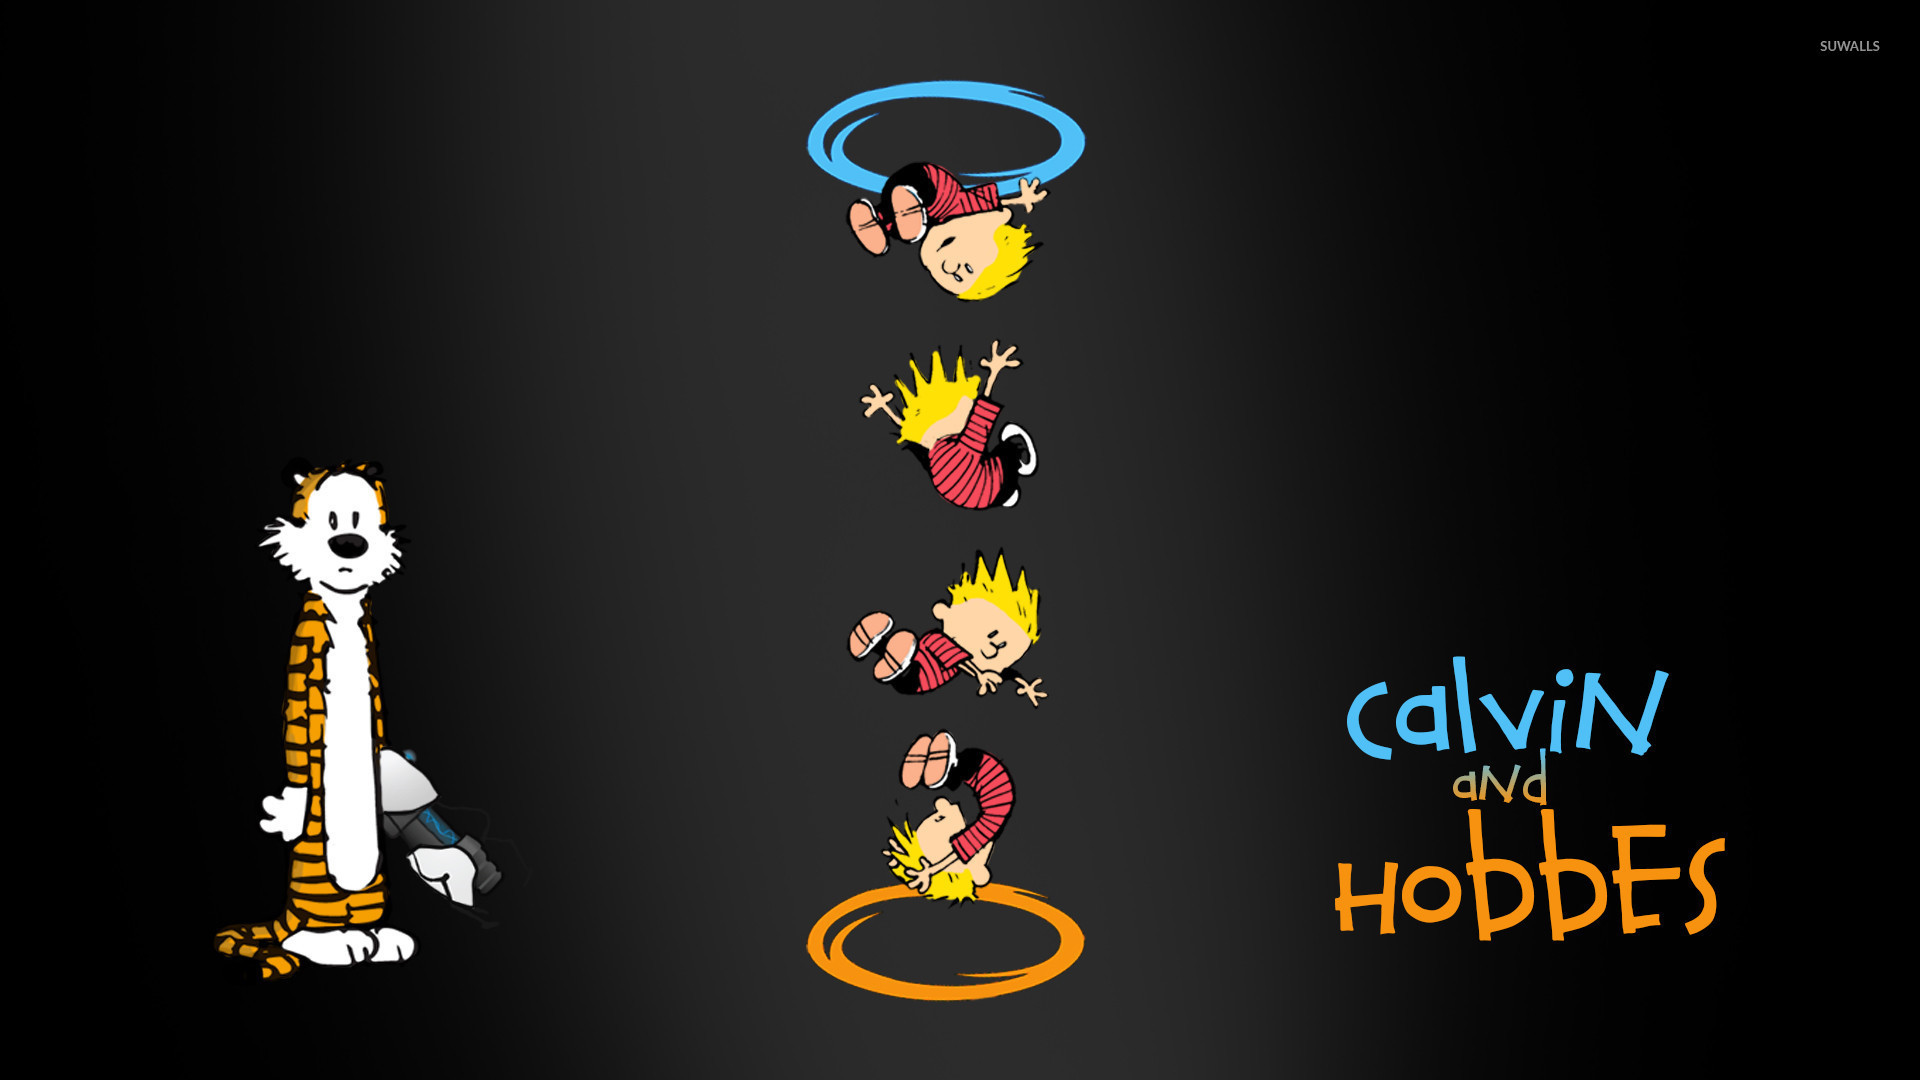 1920x1080 Calvin and Hobbes Portal crossover wallpaper